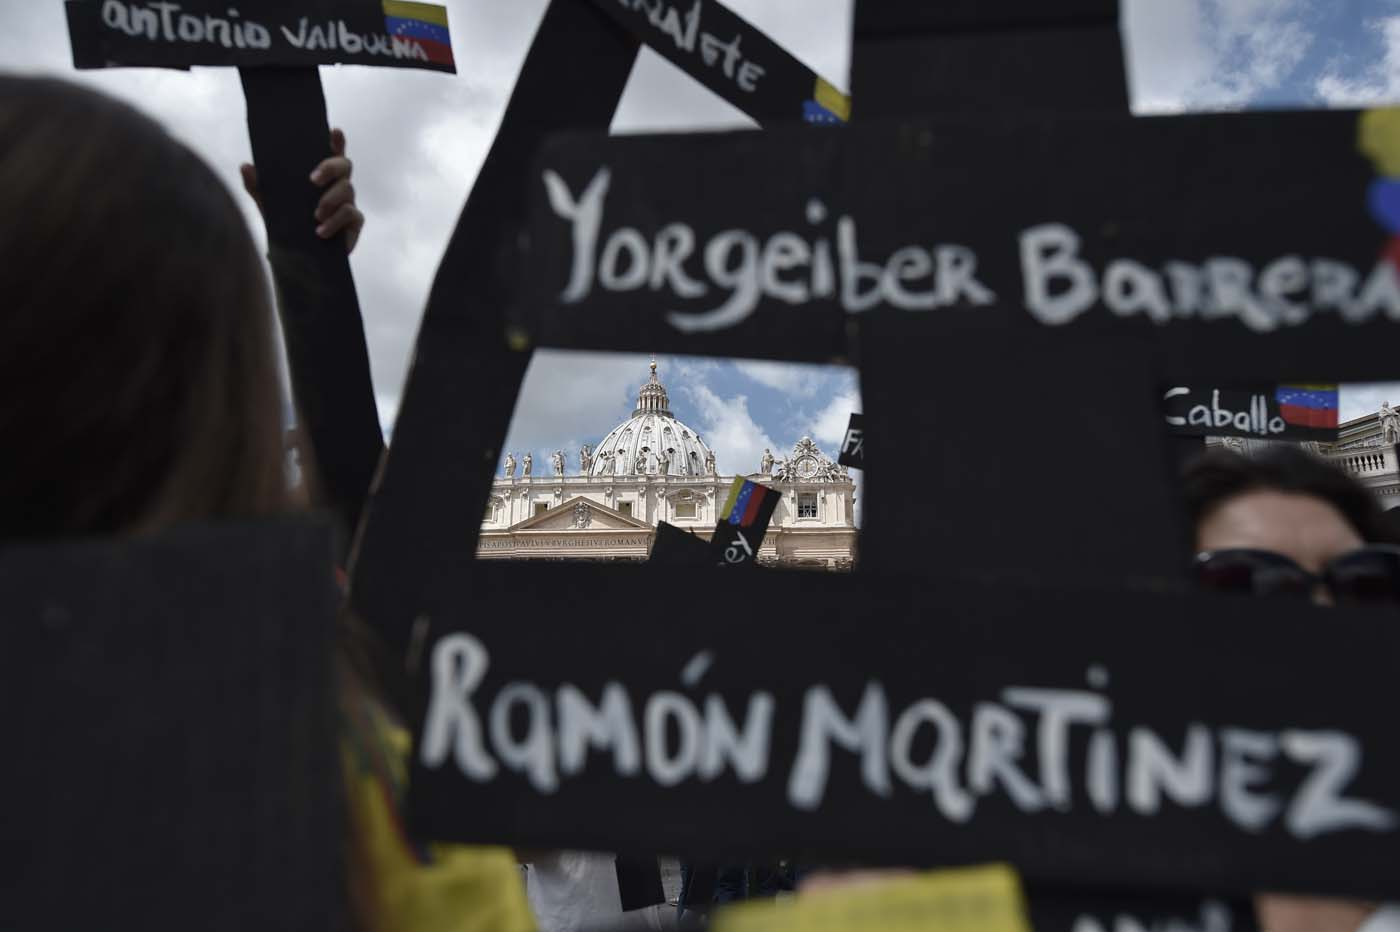 "Members of the Venezuelian community hold black crosses with names of victims of clashes with police during protests against Venezuela's President Nicolas Maduro, on May 7, 2017  at St Peter's square before the Regina Coeli prayer of Pope Francis in Vatican. Pope Francis last week made a heartfelt appeal for ""negotiated solutions"" to end the violence in crisis-torn Venezuela for the sake of an ""exhausted population"".  The death toll since April -- when the protests intensified after Maduro's administration and the courts stepped up efforts to undermine the opposition -- is at least 36, according to prosecutors, with hundreds more injured. / AFP PHOTO / TIZIANA FABI"